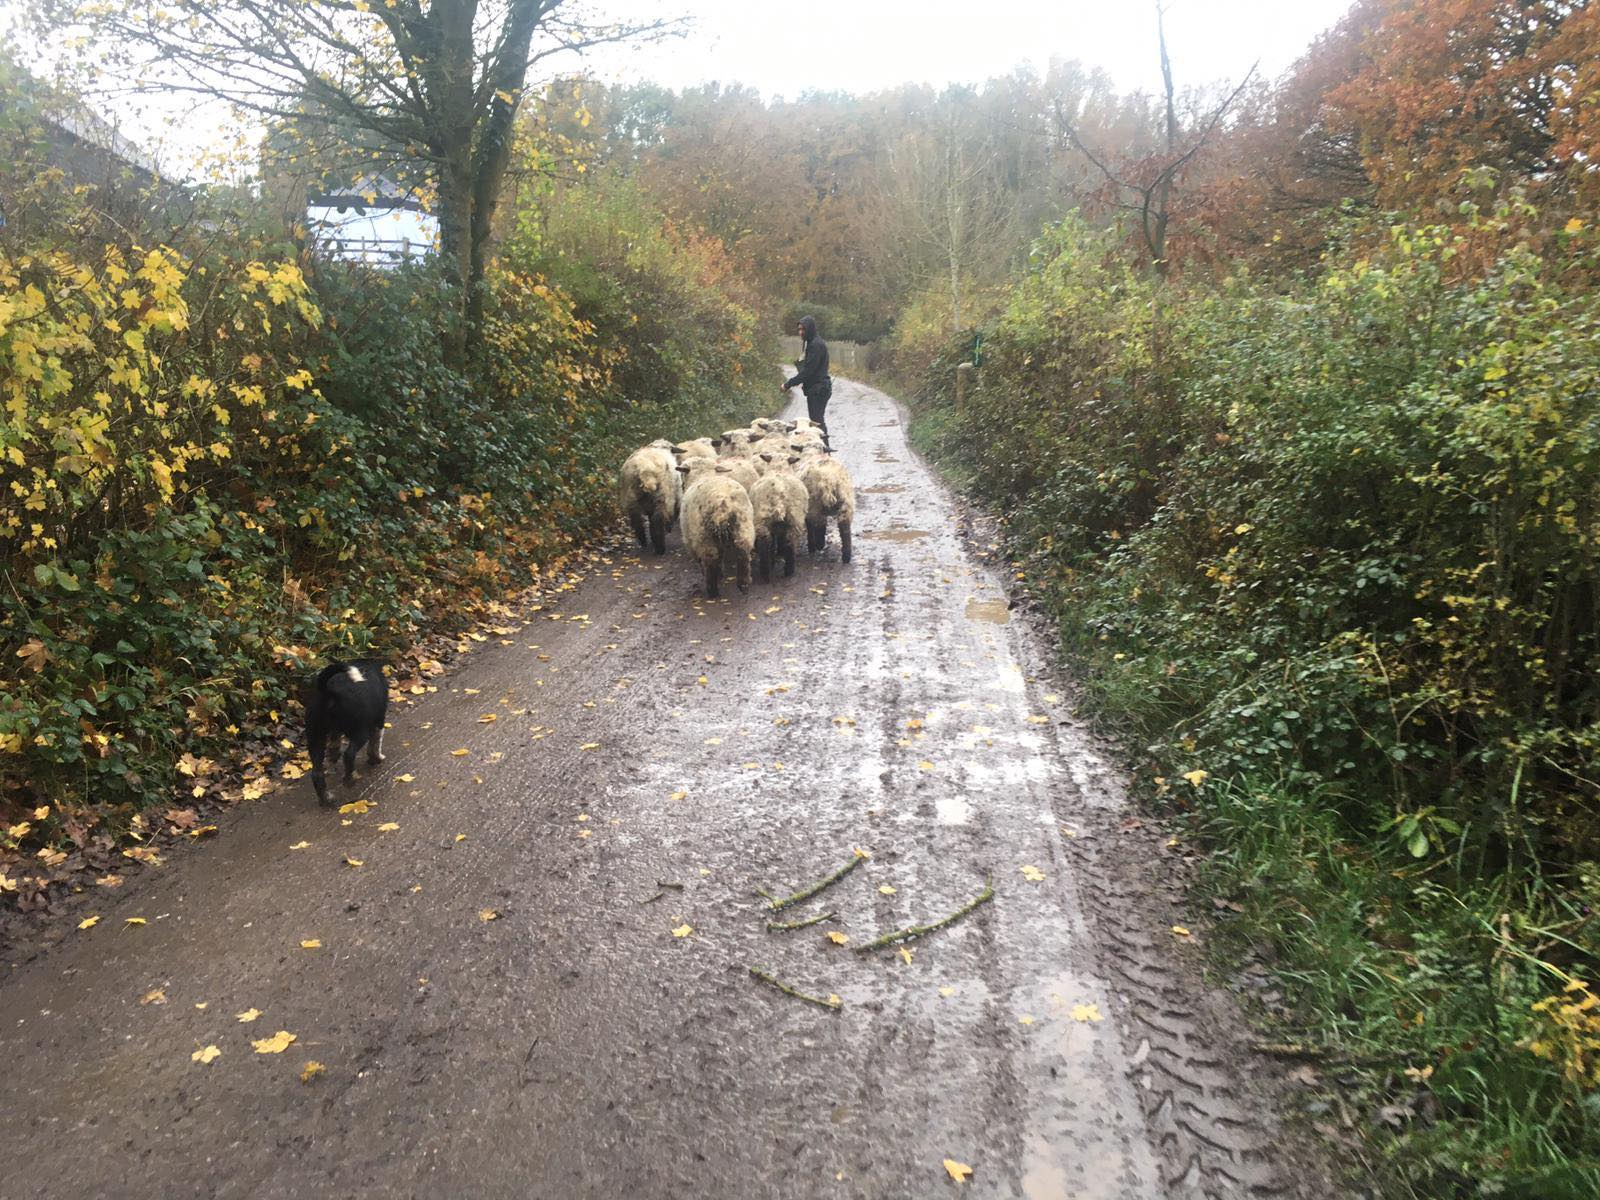 Sheep dog puppy walking sheep up path